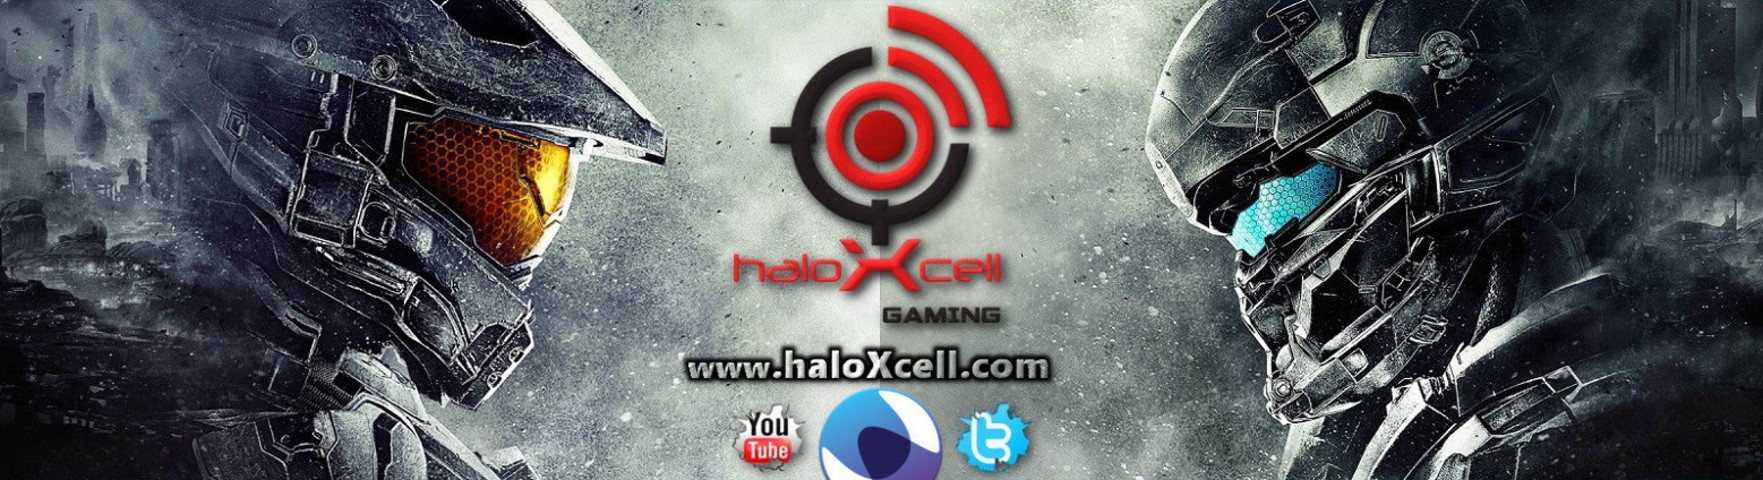 HaloXcell